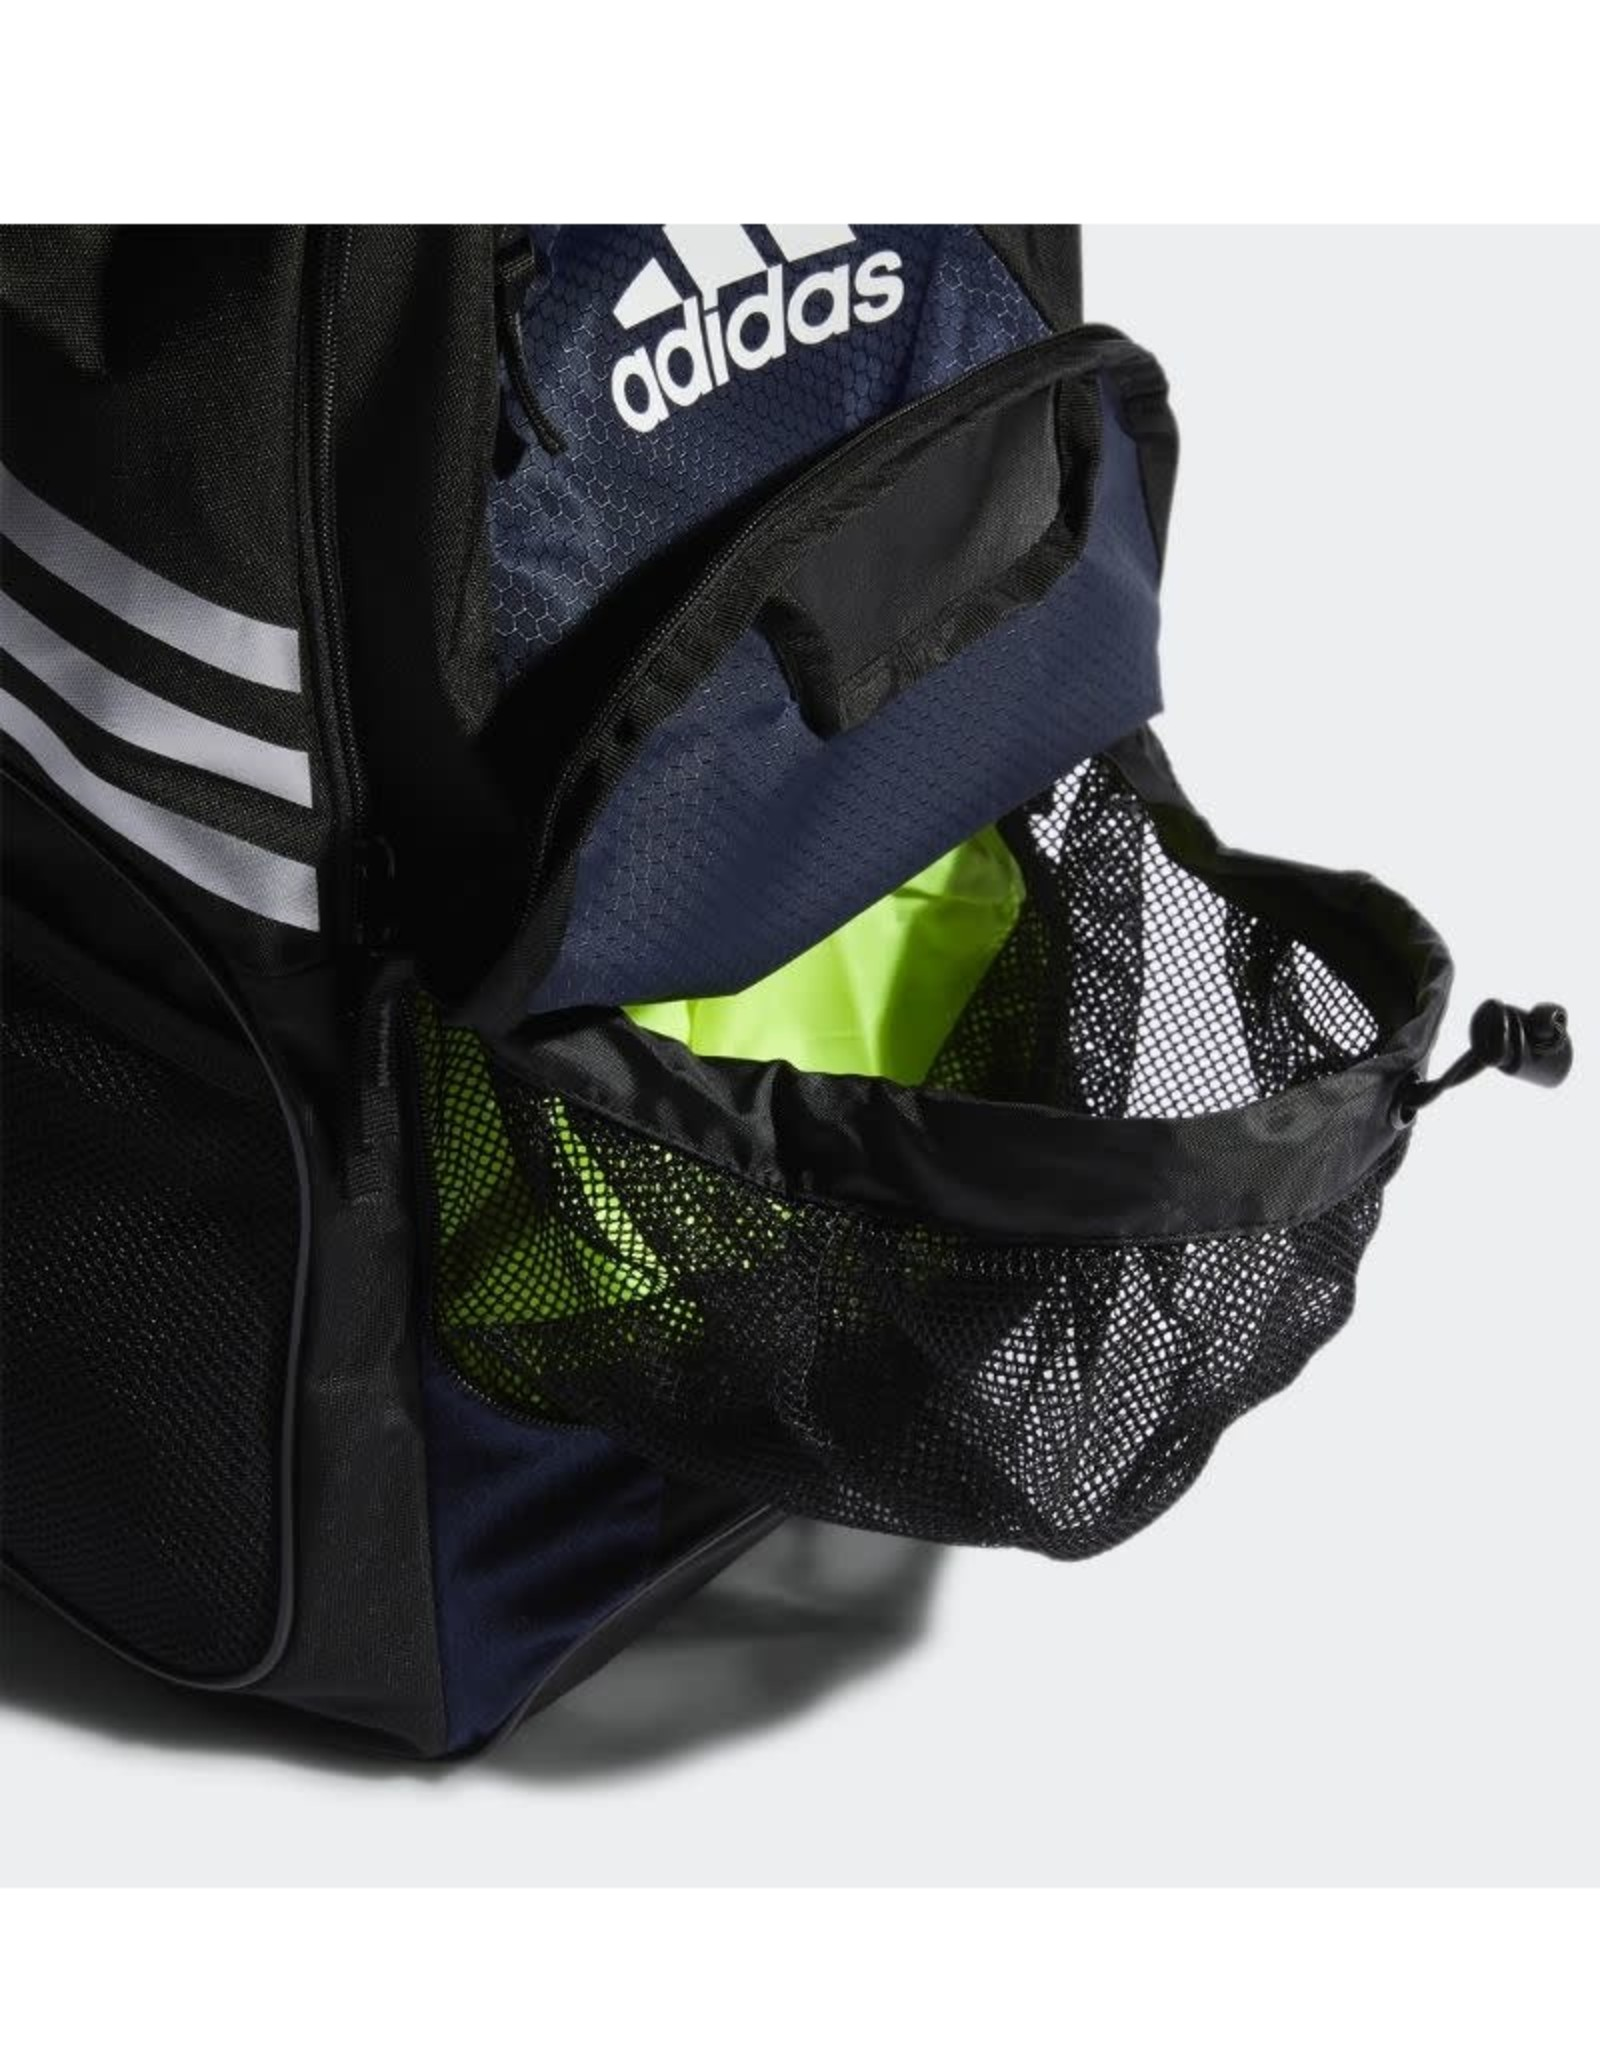 Adidas Adidas Stadium II Backpack Navy